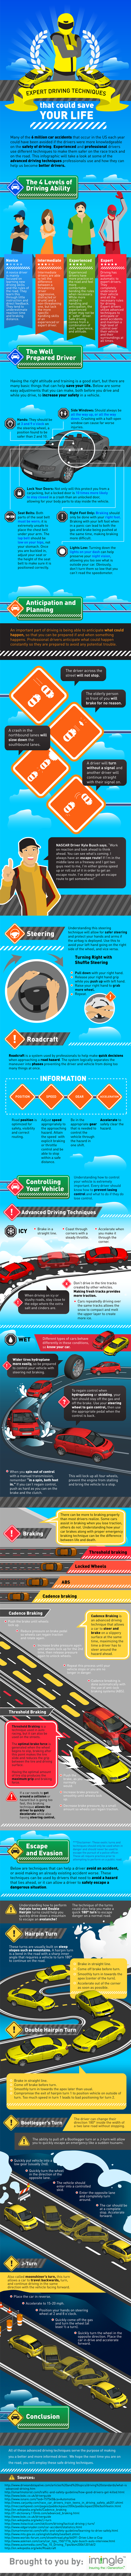 Expert Driving Techniques #infographic